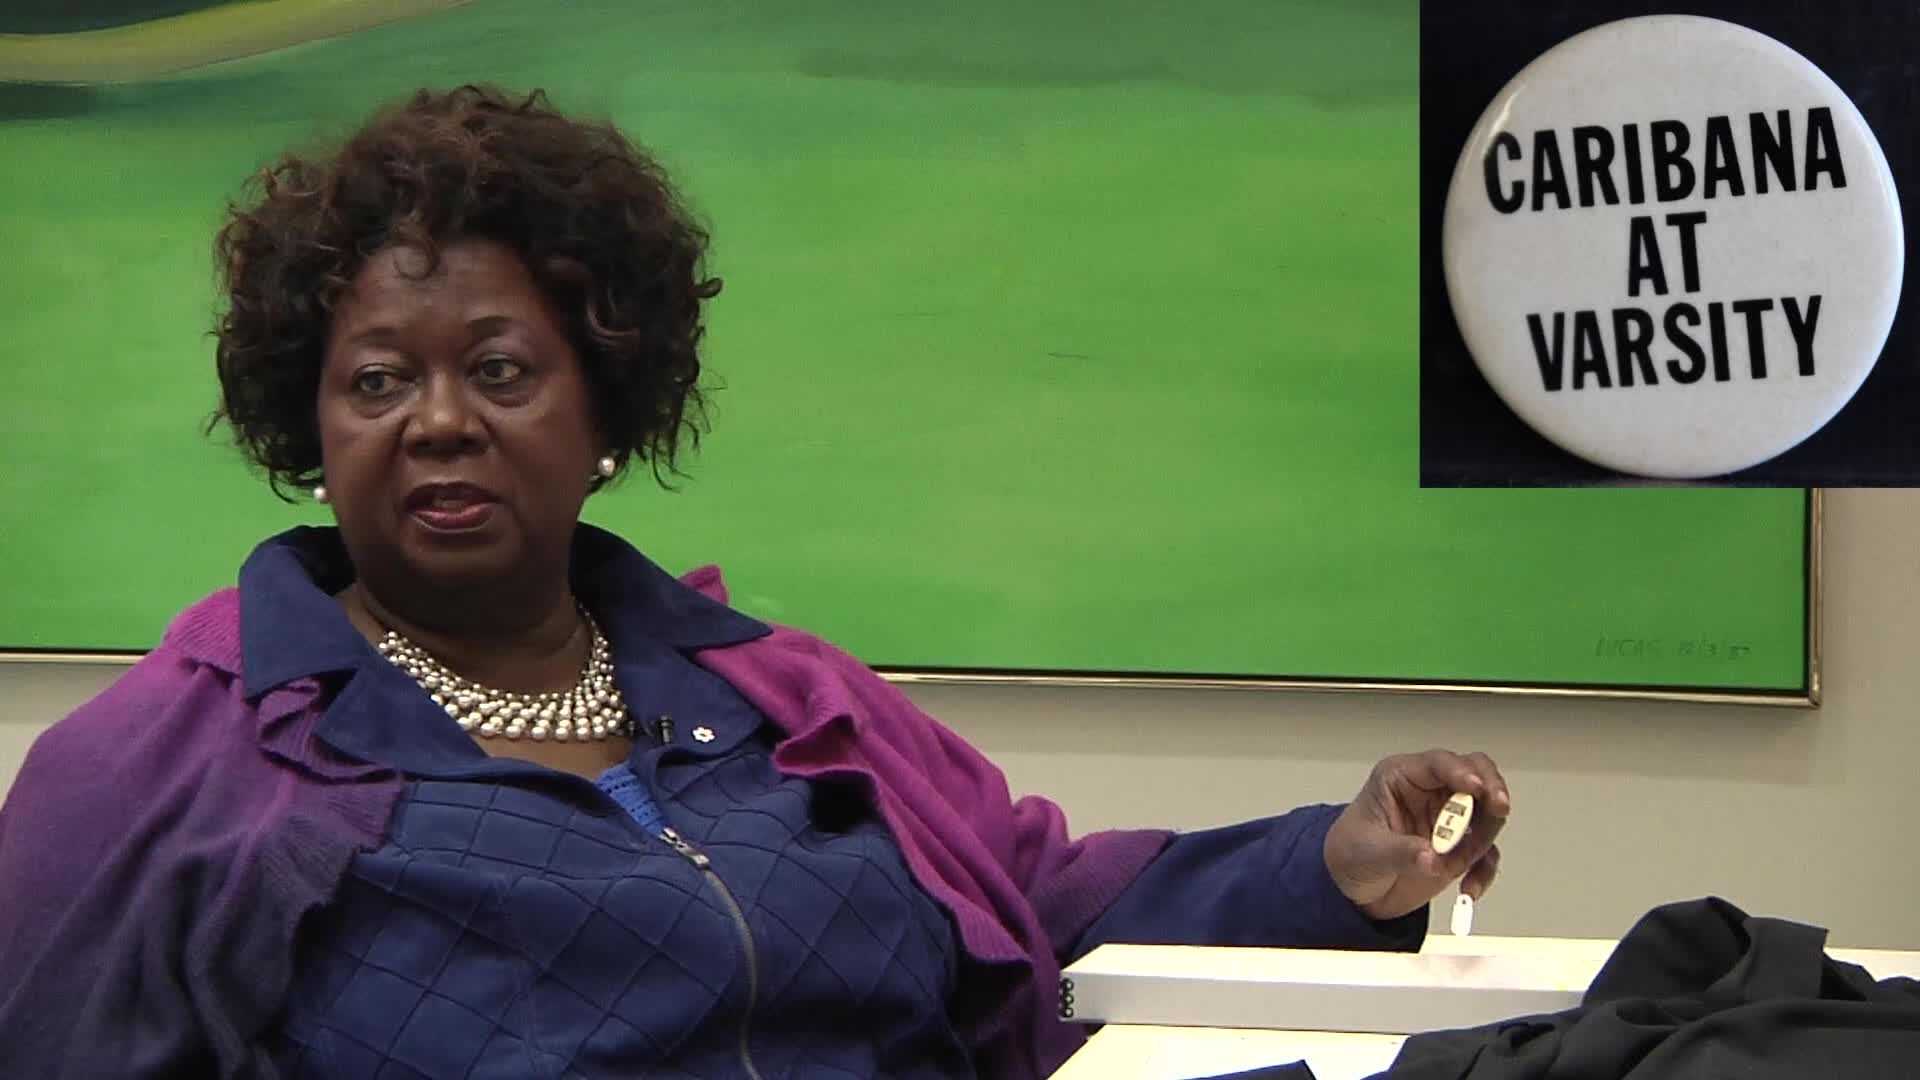 Jean Augustine interview: Caribana at Varsity button